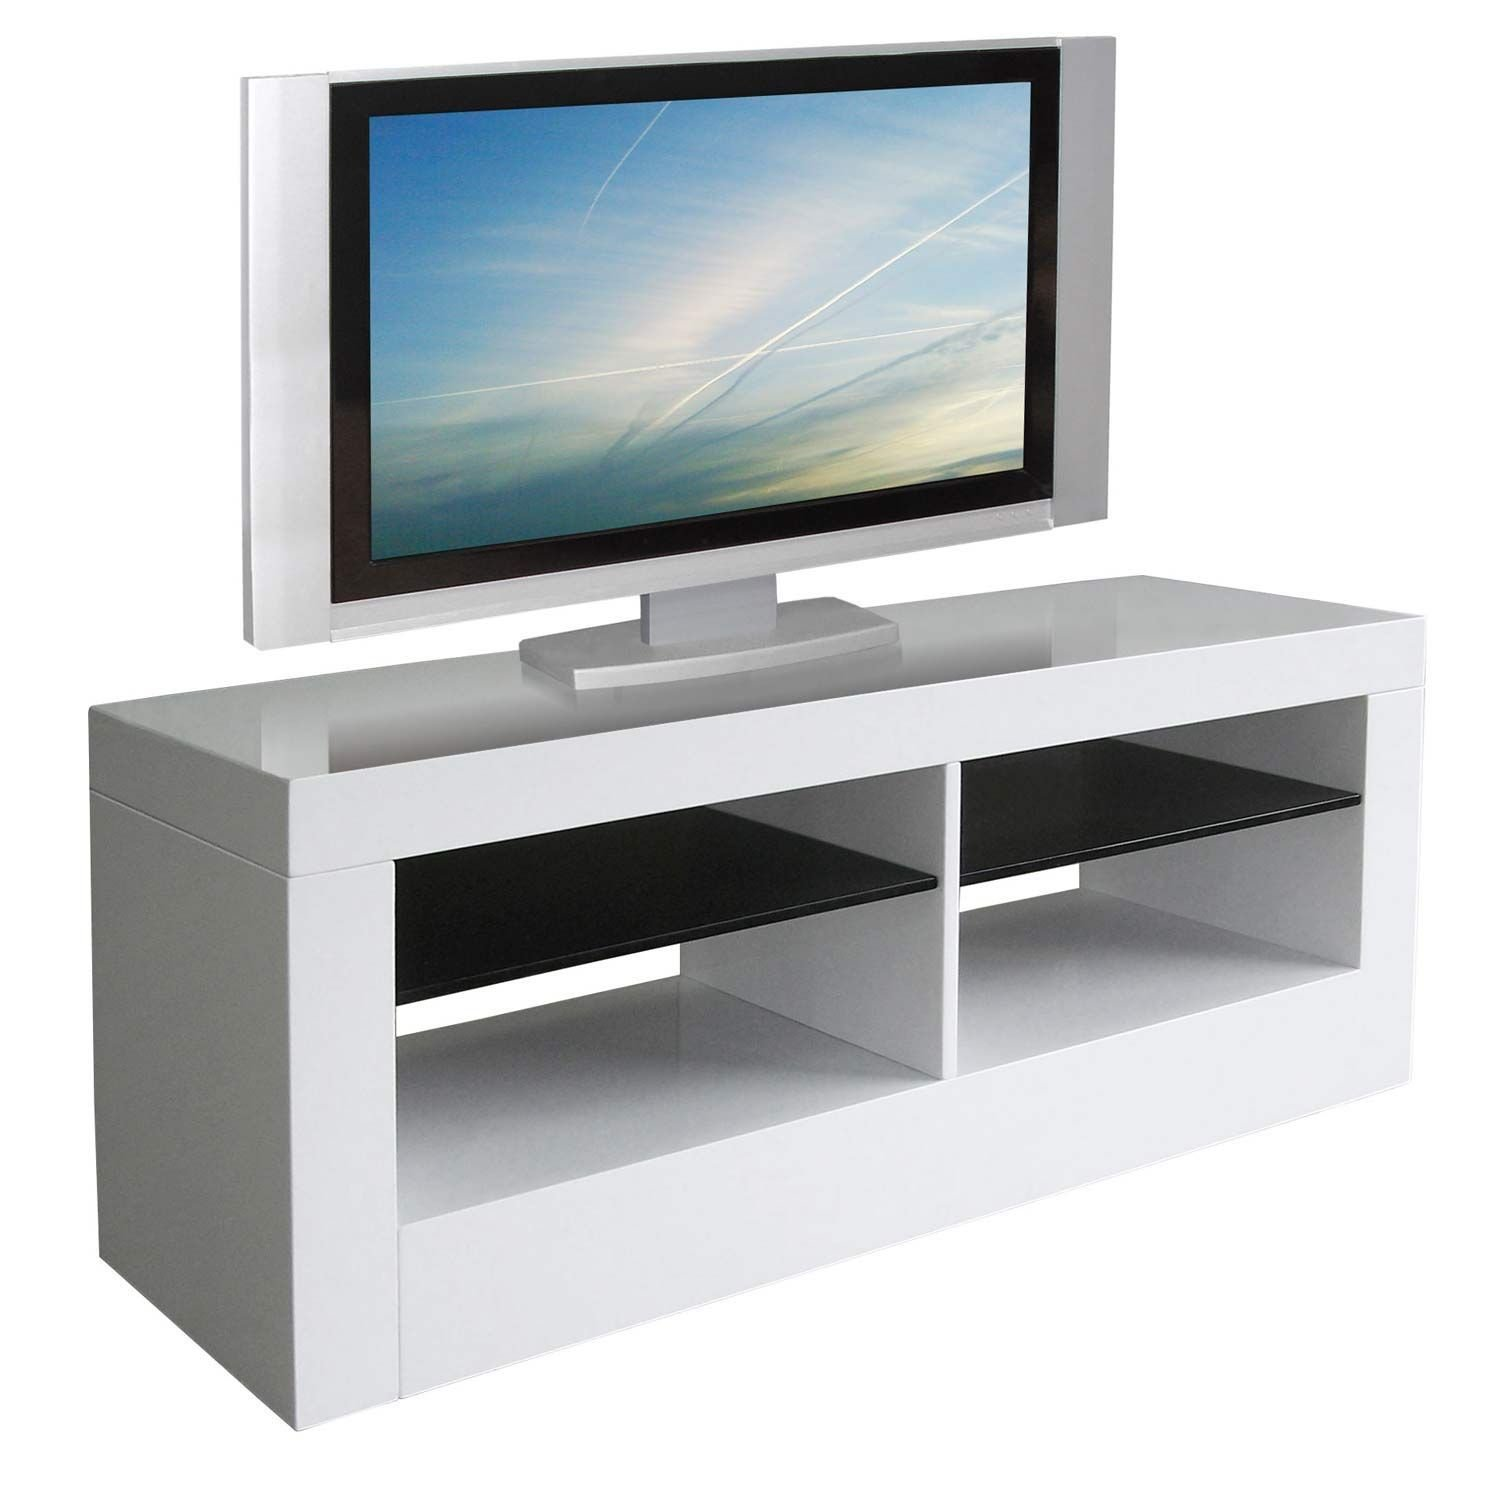 meuble tv 60 cm hauteur maison et mobilier d 39 int rieur. Black Bedroom Furniture Sets. Home Design Ideas